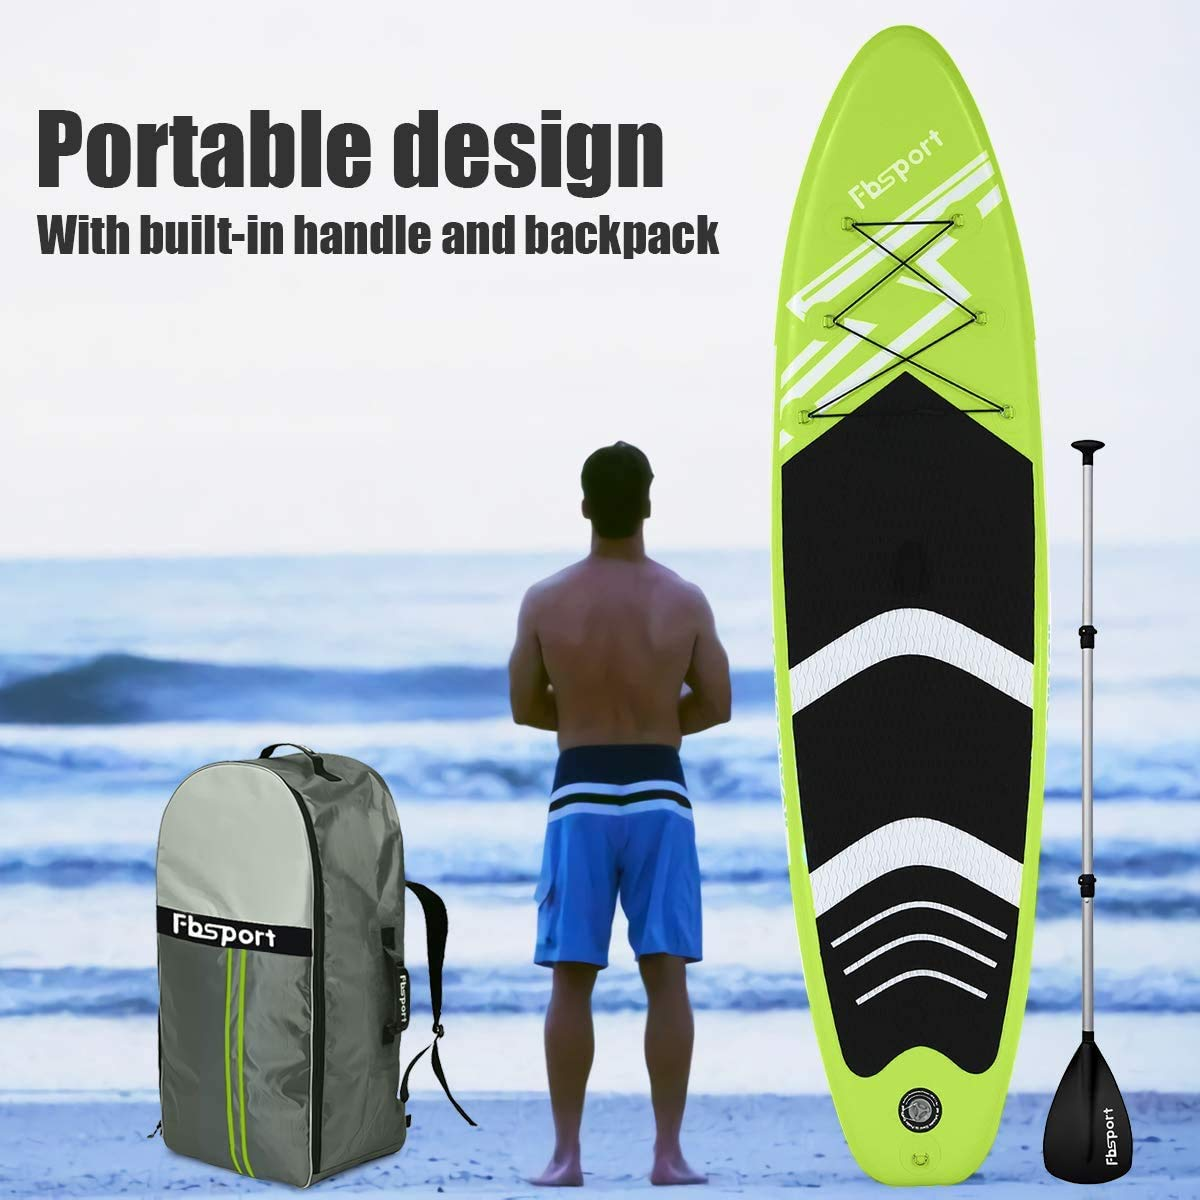 FBSPORT Tabla de Surf Hinchable, 300cm Tabla de Paddle Surf Hinchable, Tabla Inflable de Paddle Surf de construcción ultrarresistente, Remo Ajustable, Tabla Sup Hinchable con Bomba: Amazon.es: Deportes y aire libre